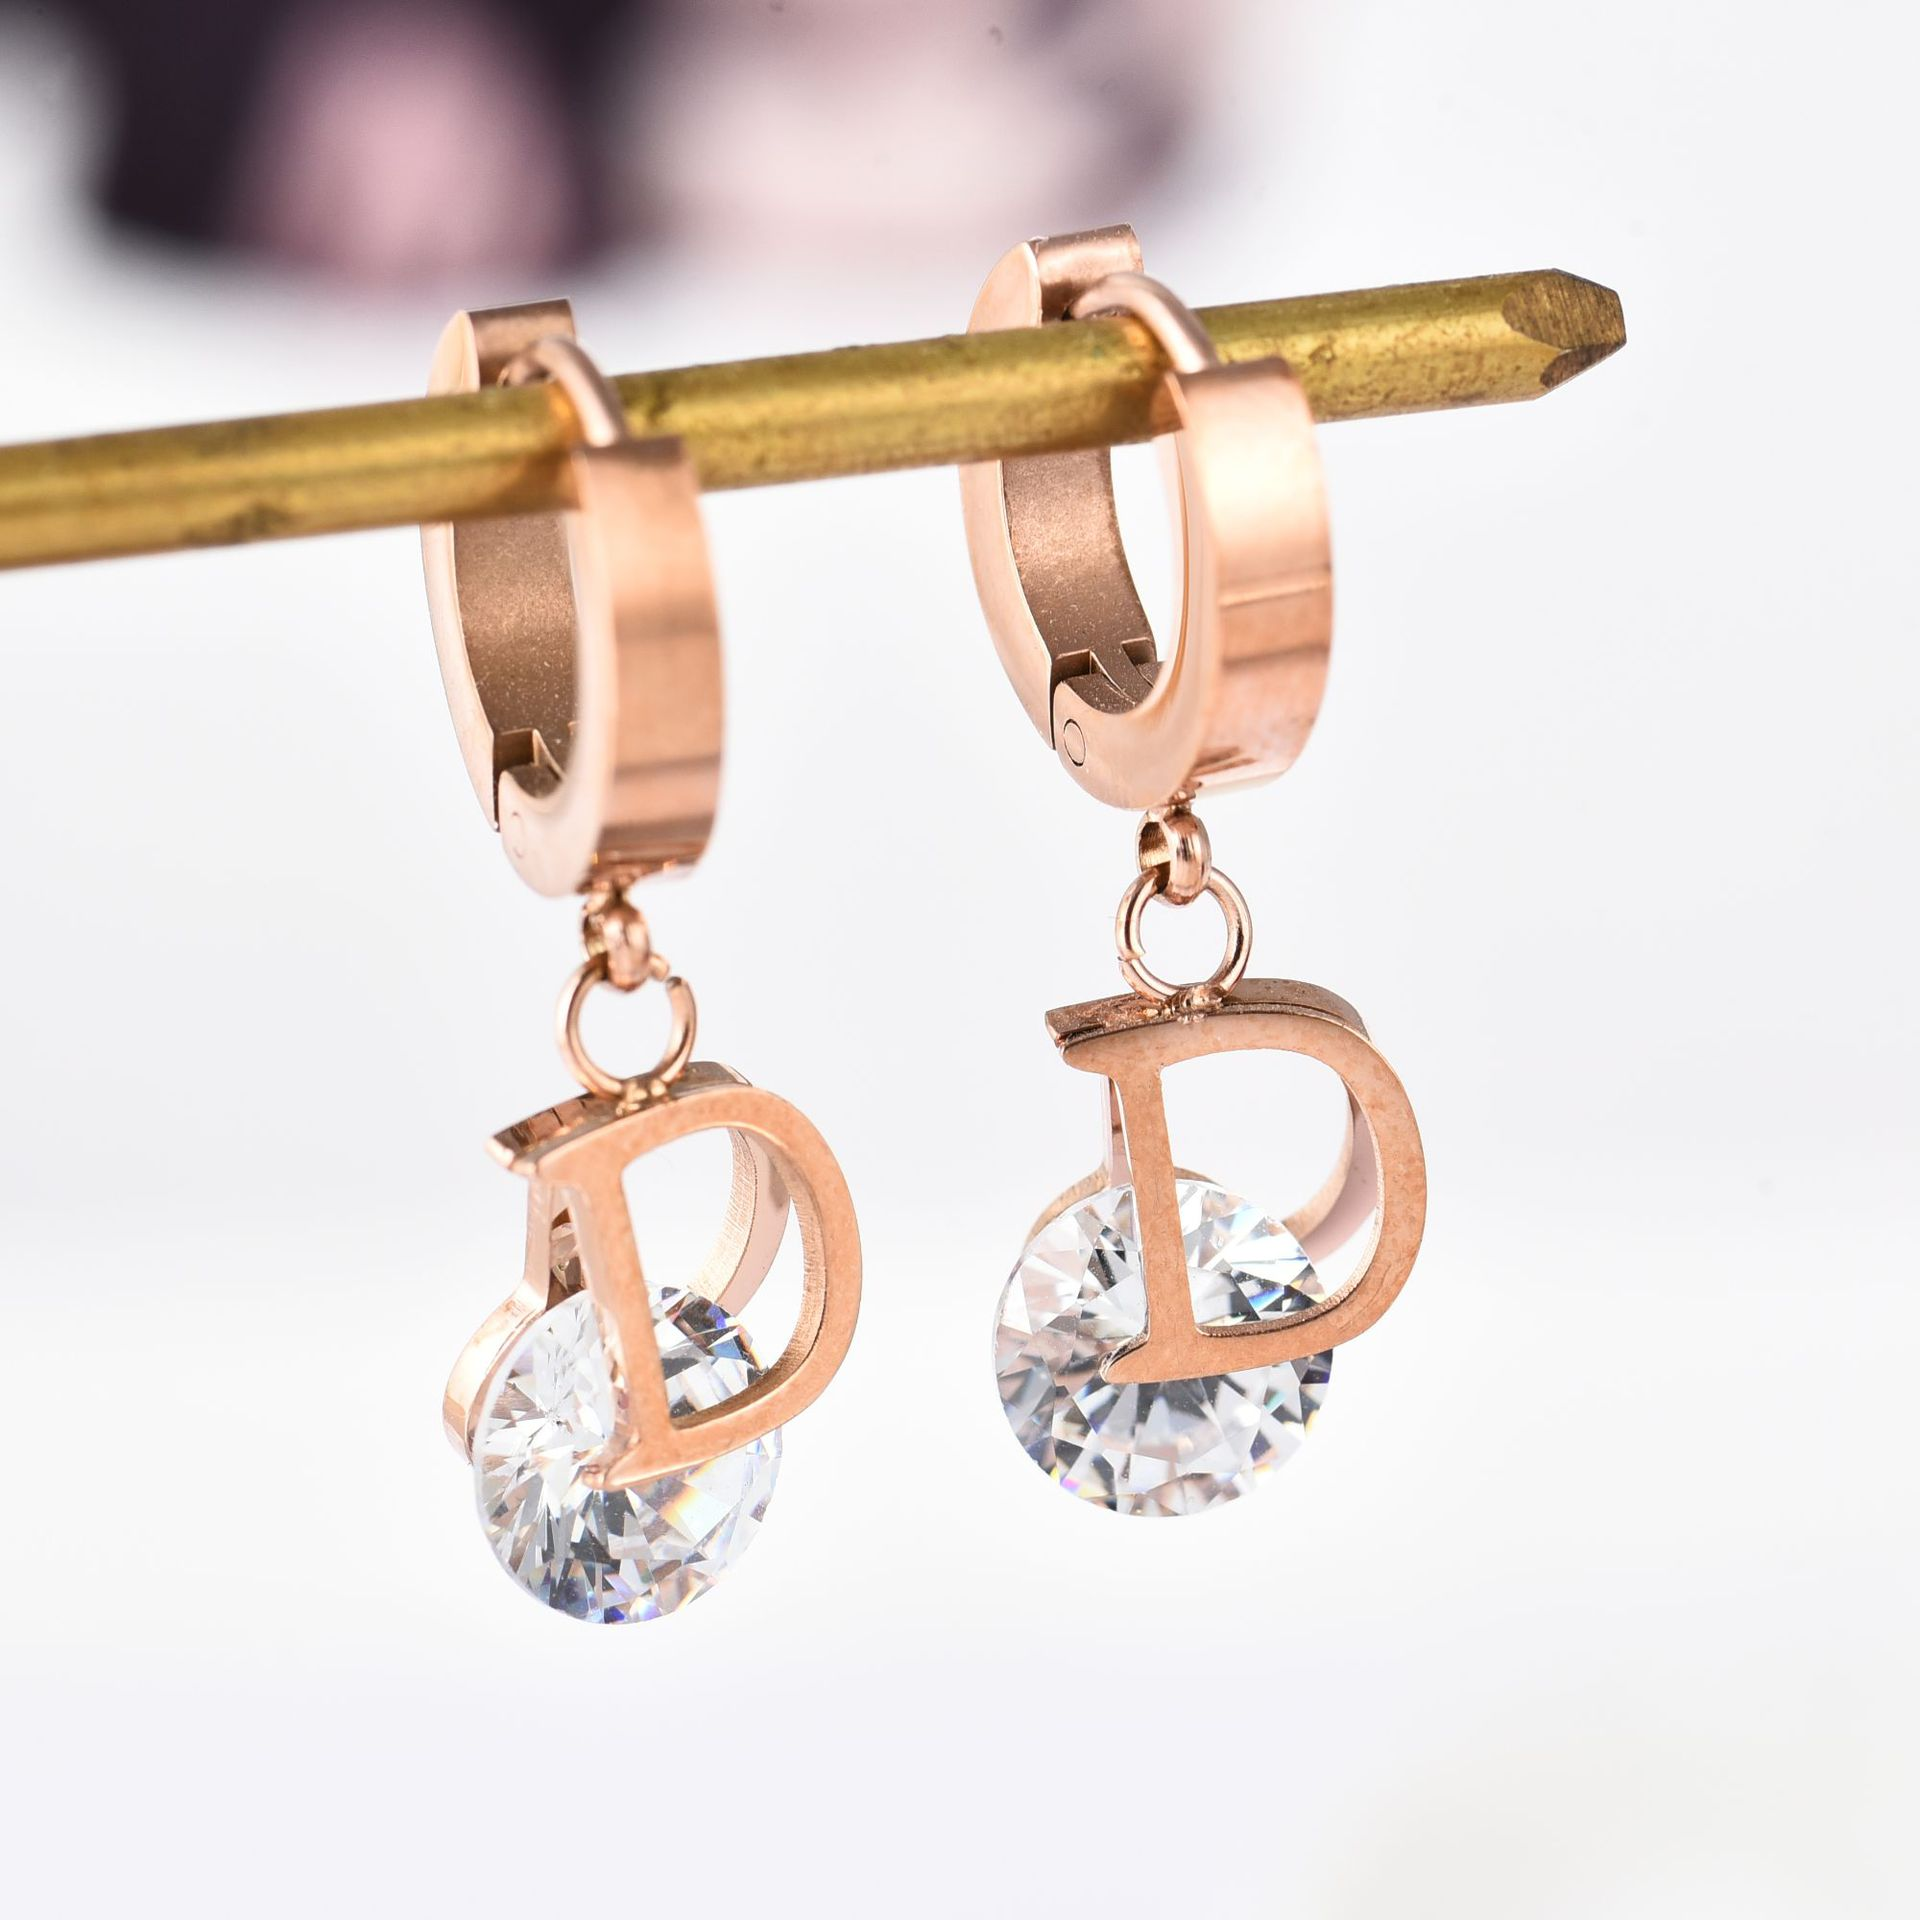 Vintage Luxury Letter D Crystal Earrings For Women Stainless Steel Gold Small Delicate Stud Earrings Brand Fashion Jewelry Gift